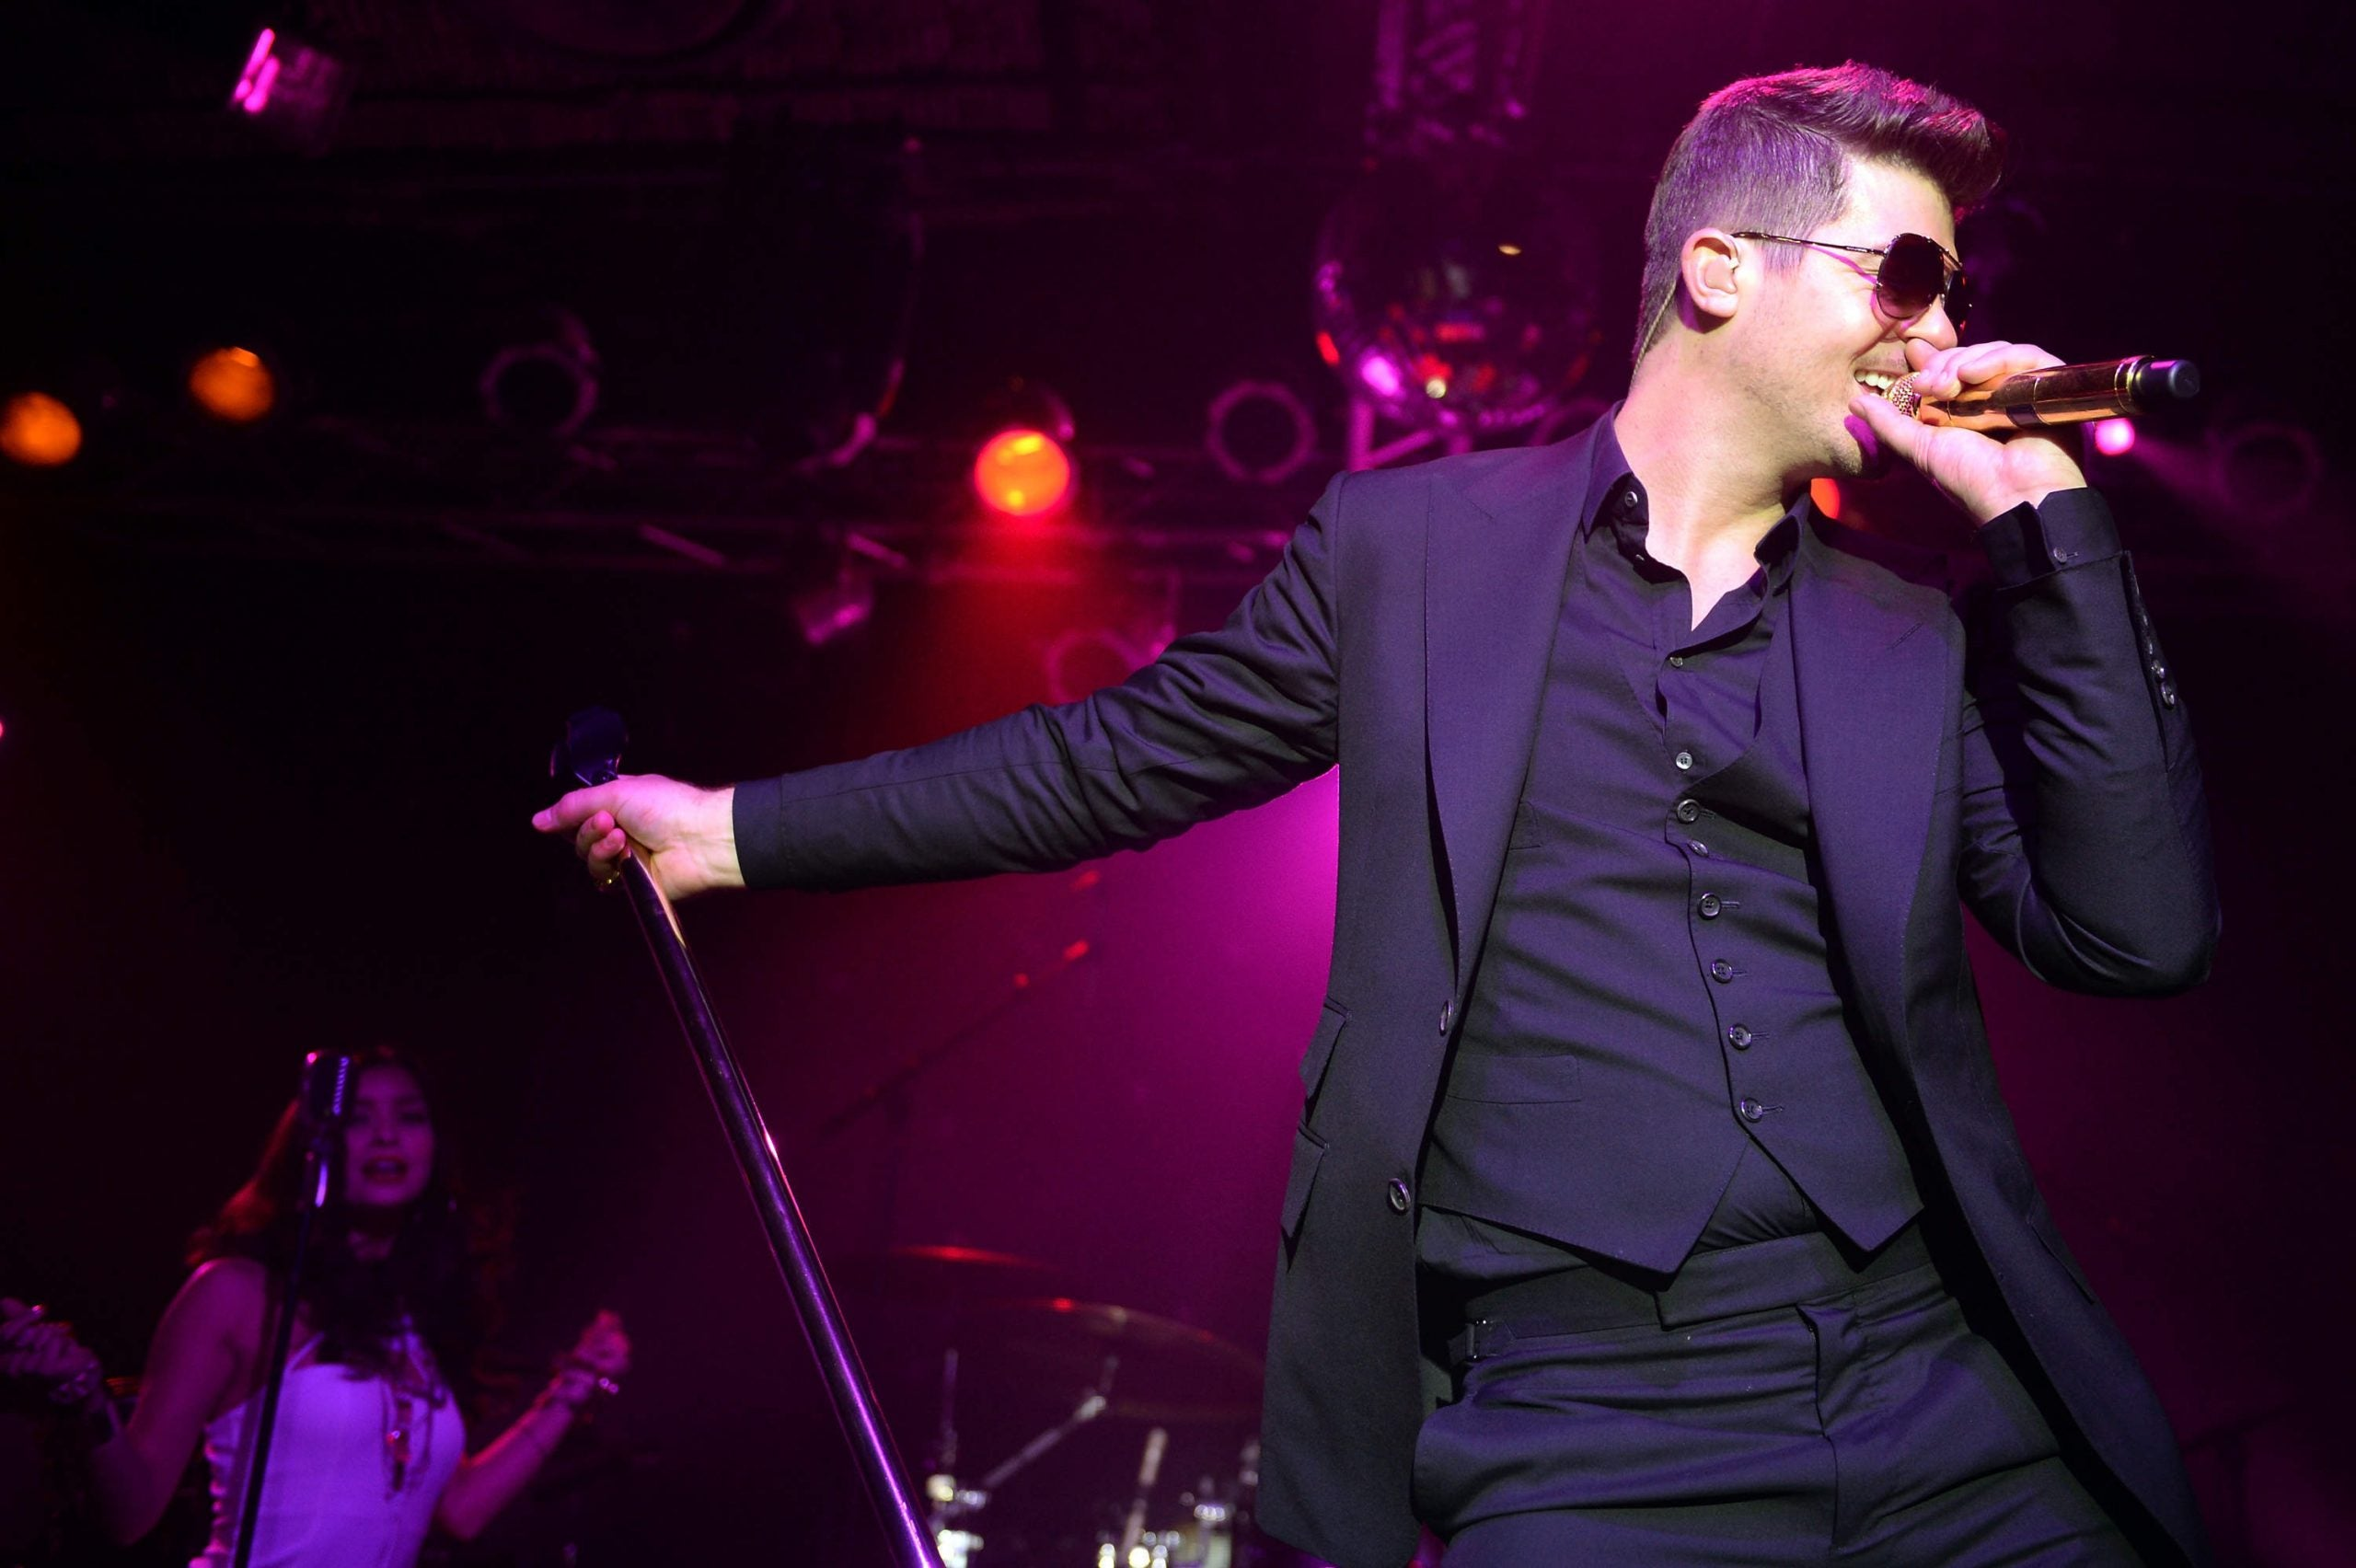 If you think Robin Thicke's Blurred Lines plagiarises Marvin Gaye, you don't understand songwriting